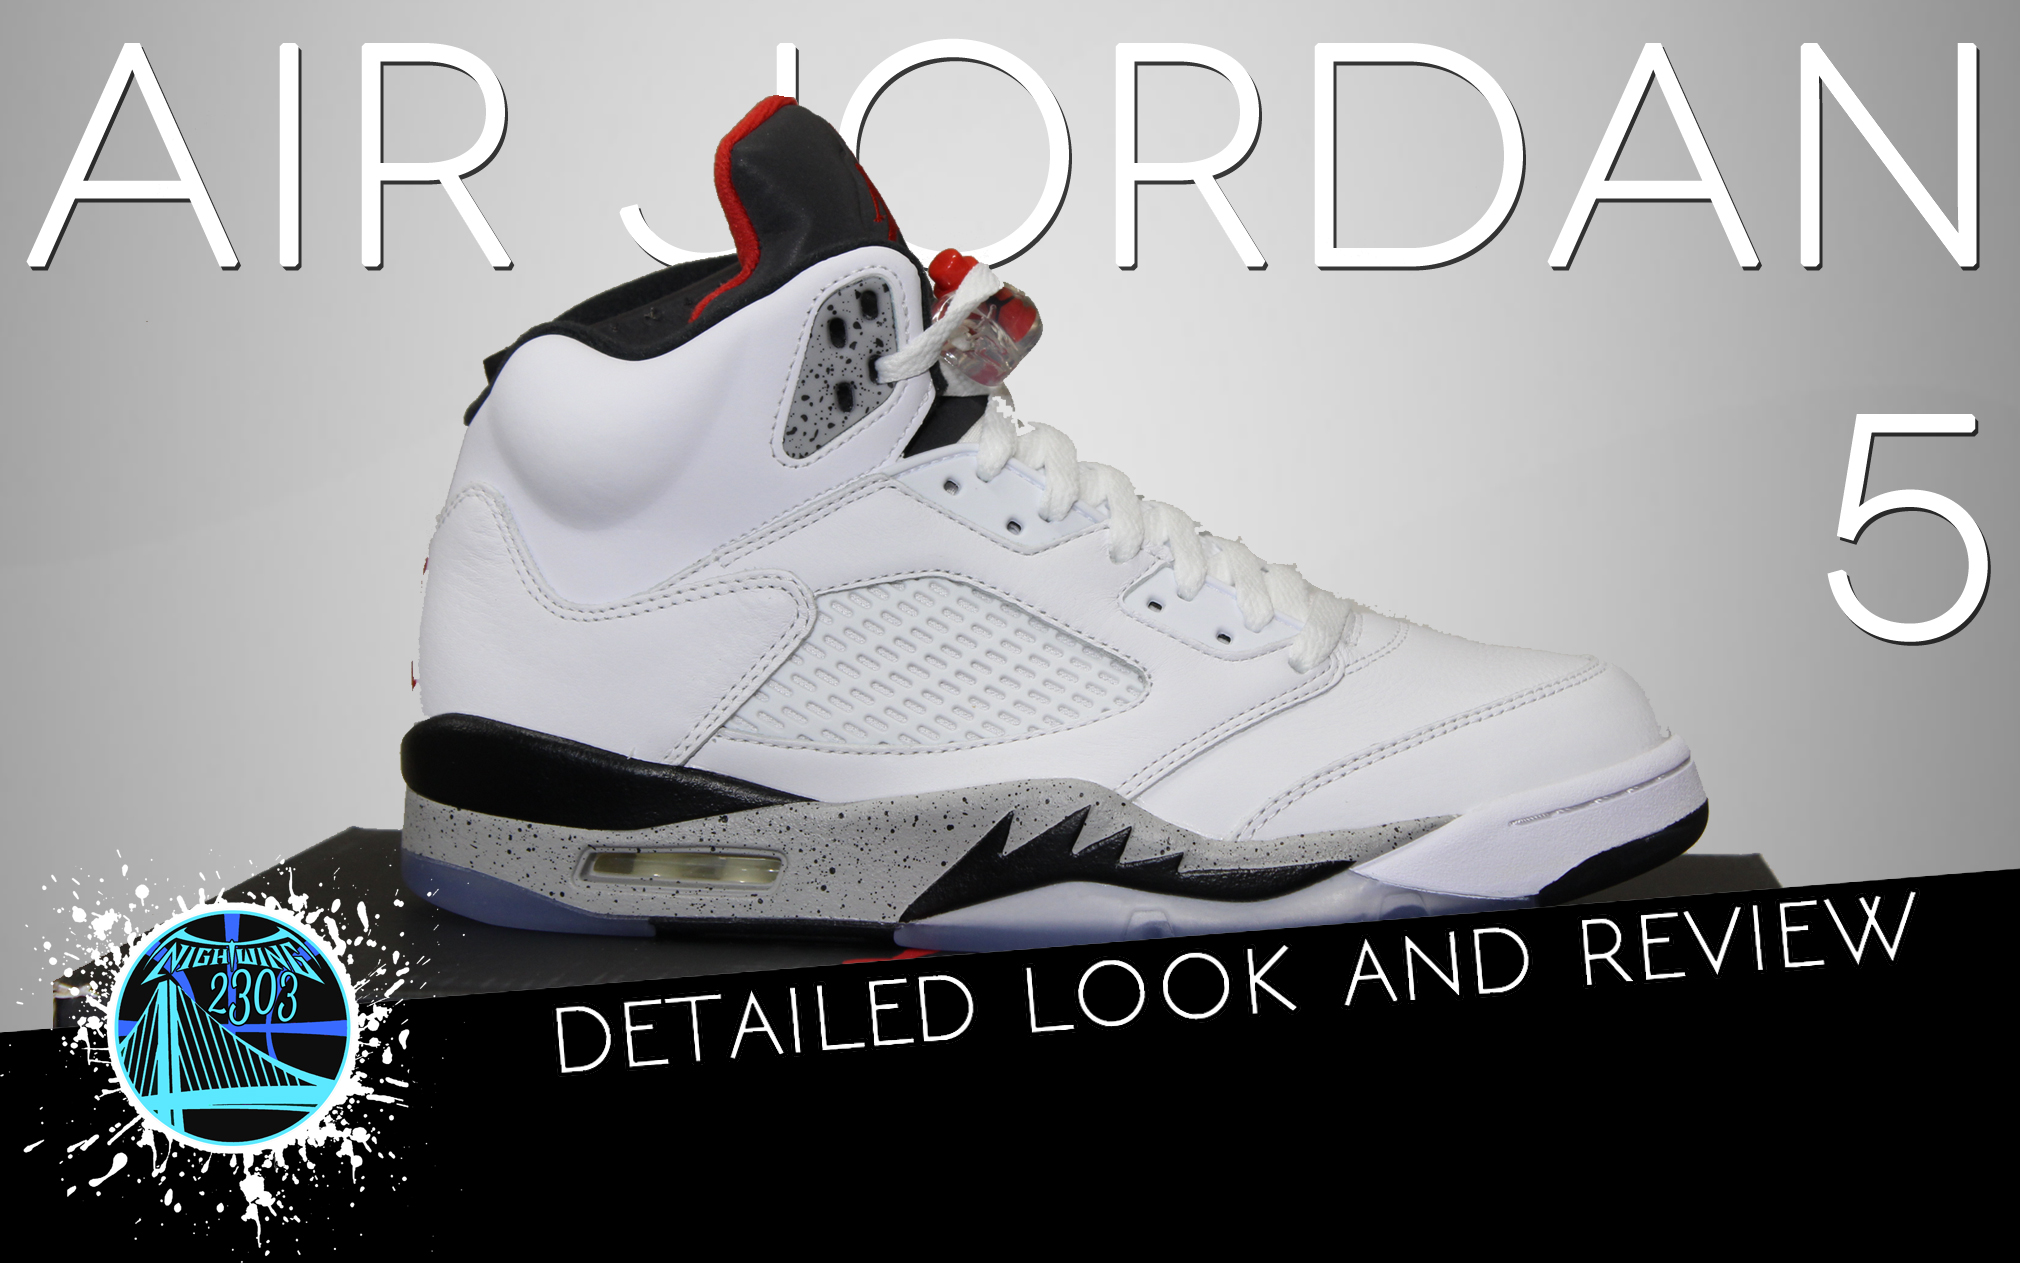 Air Jordan 5 White:Cement | Detailed Look and Review